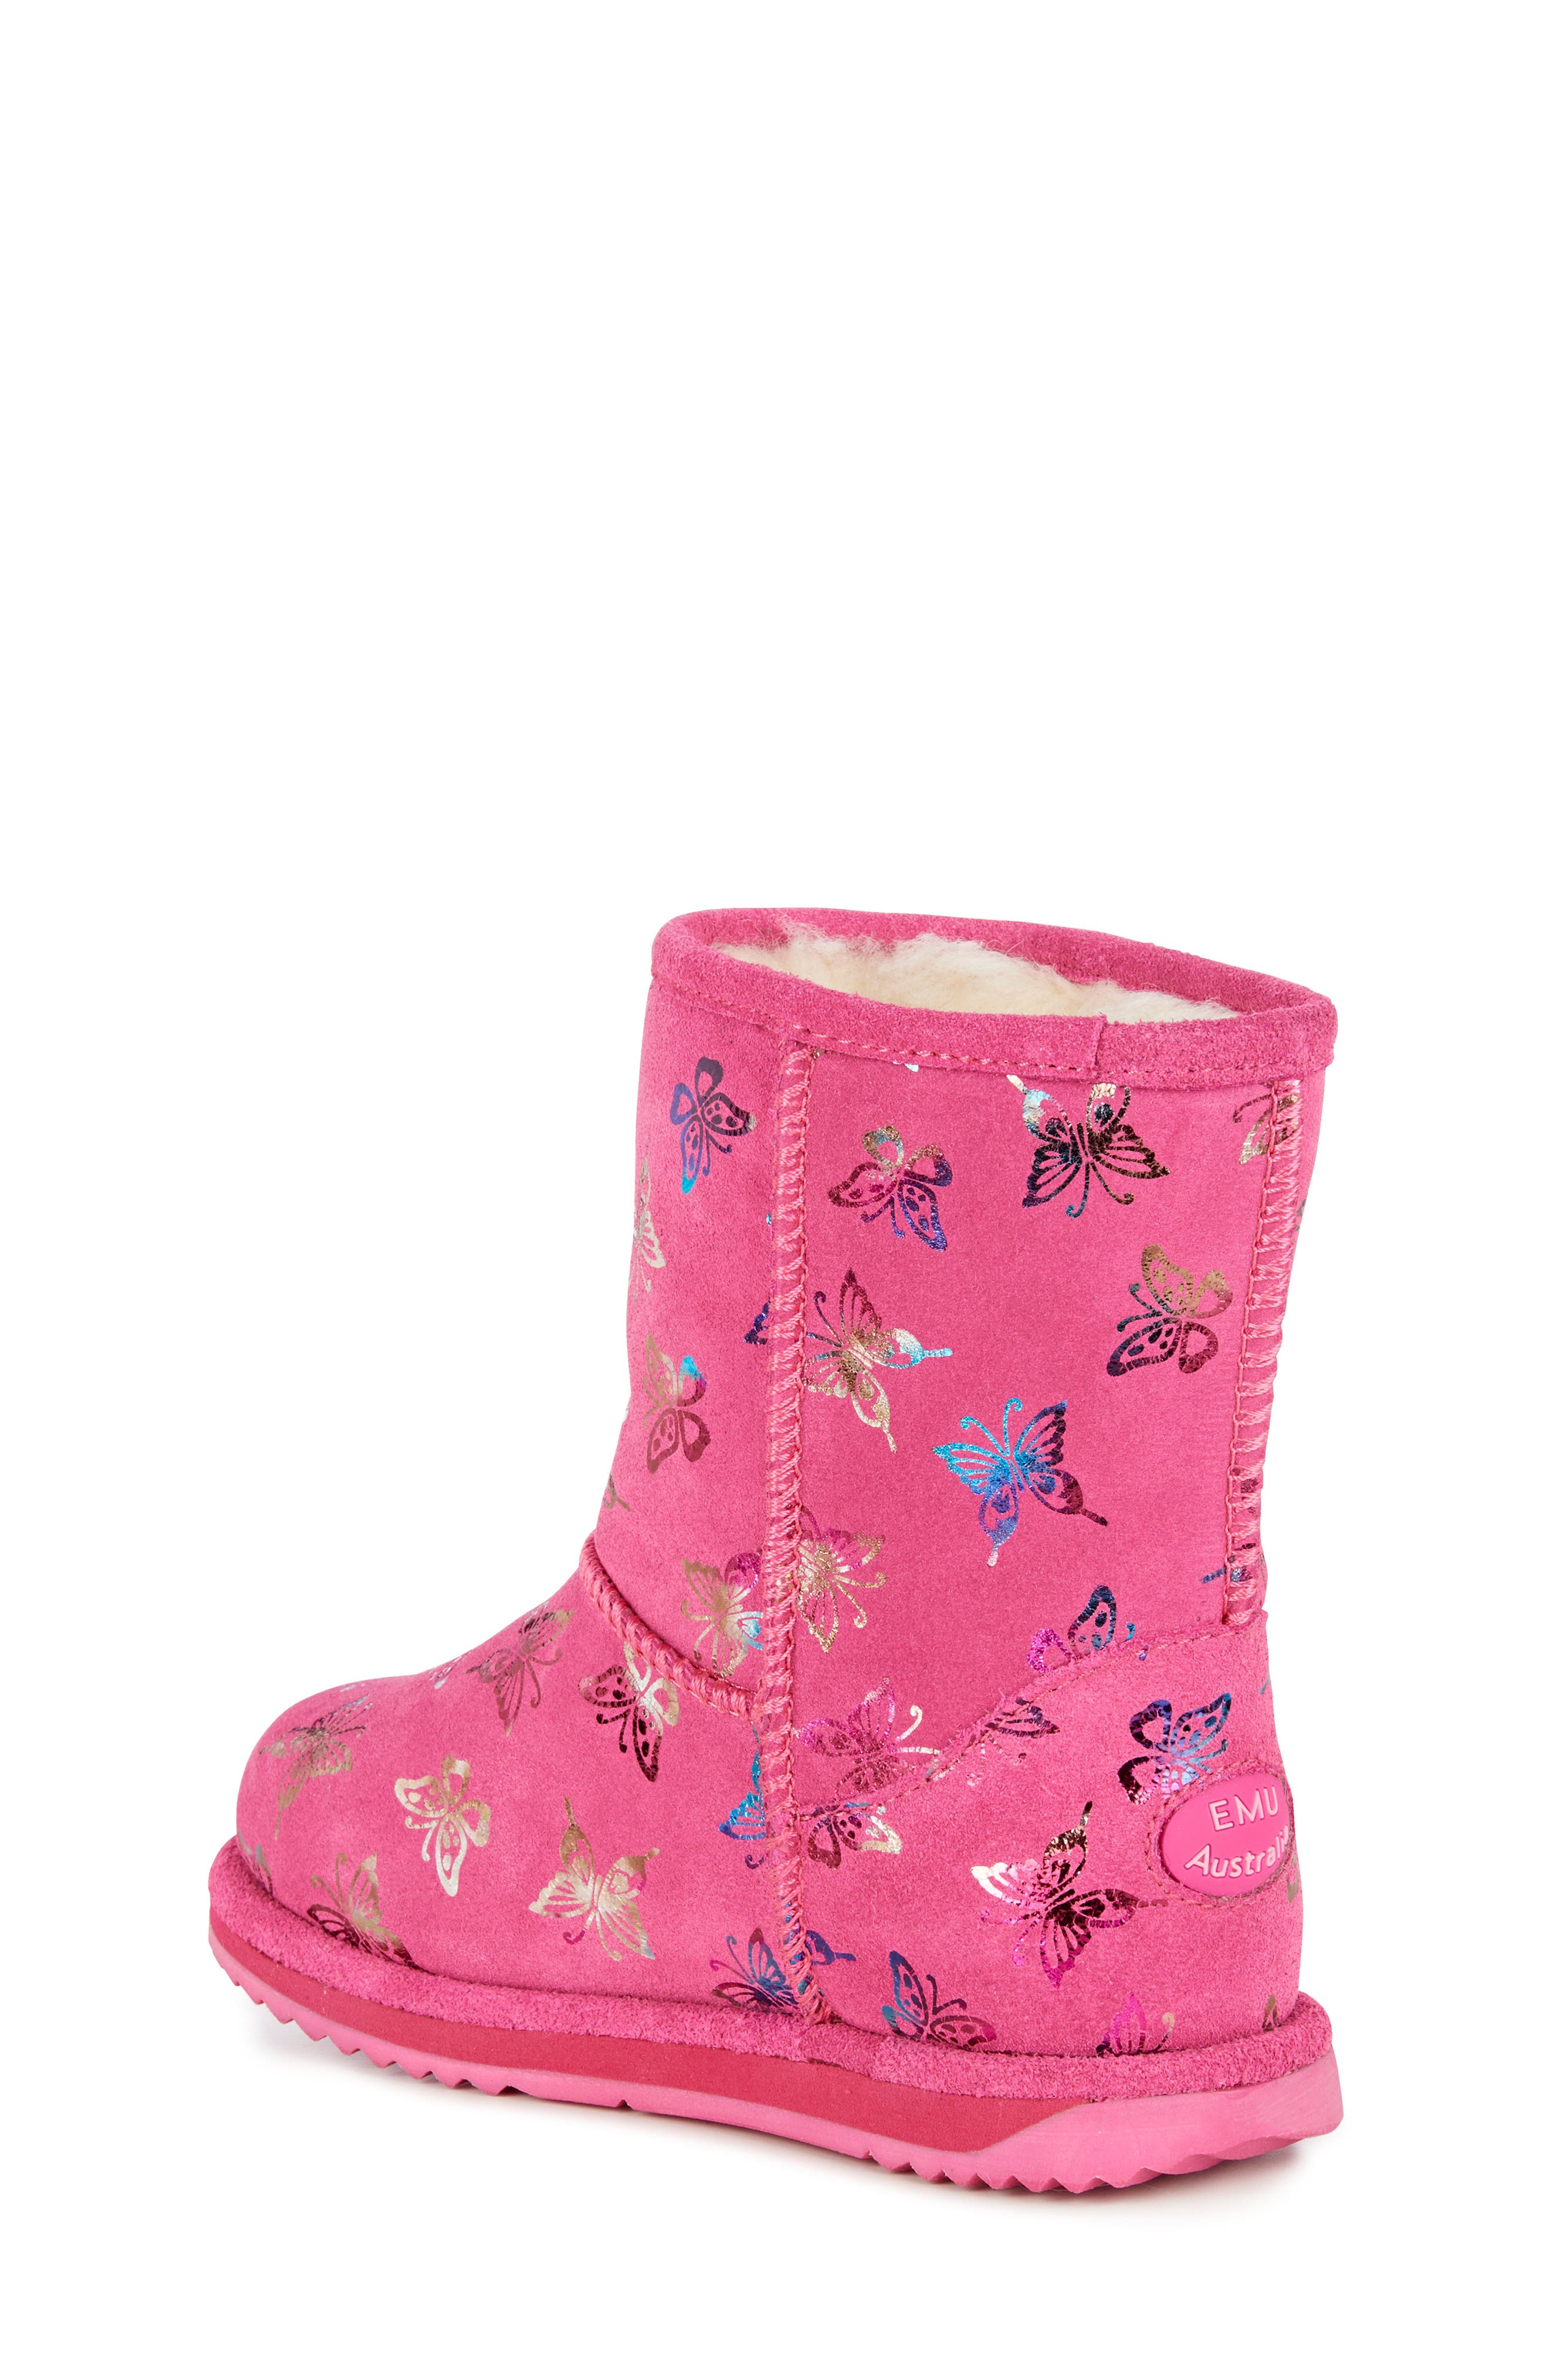 Animal Print Boots,                             Alternate thumbnail 2, color,                             HOT PINK